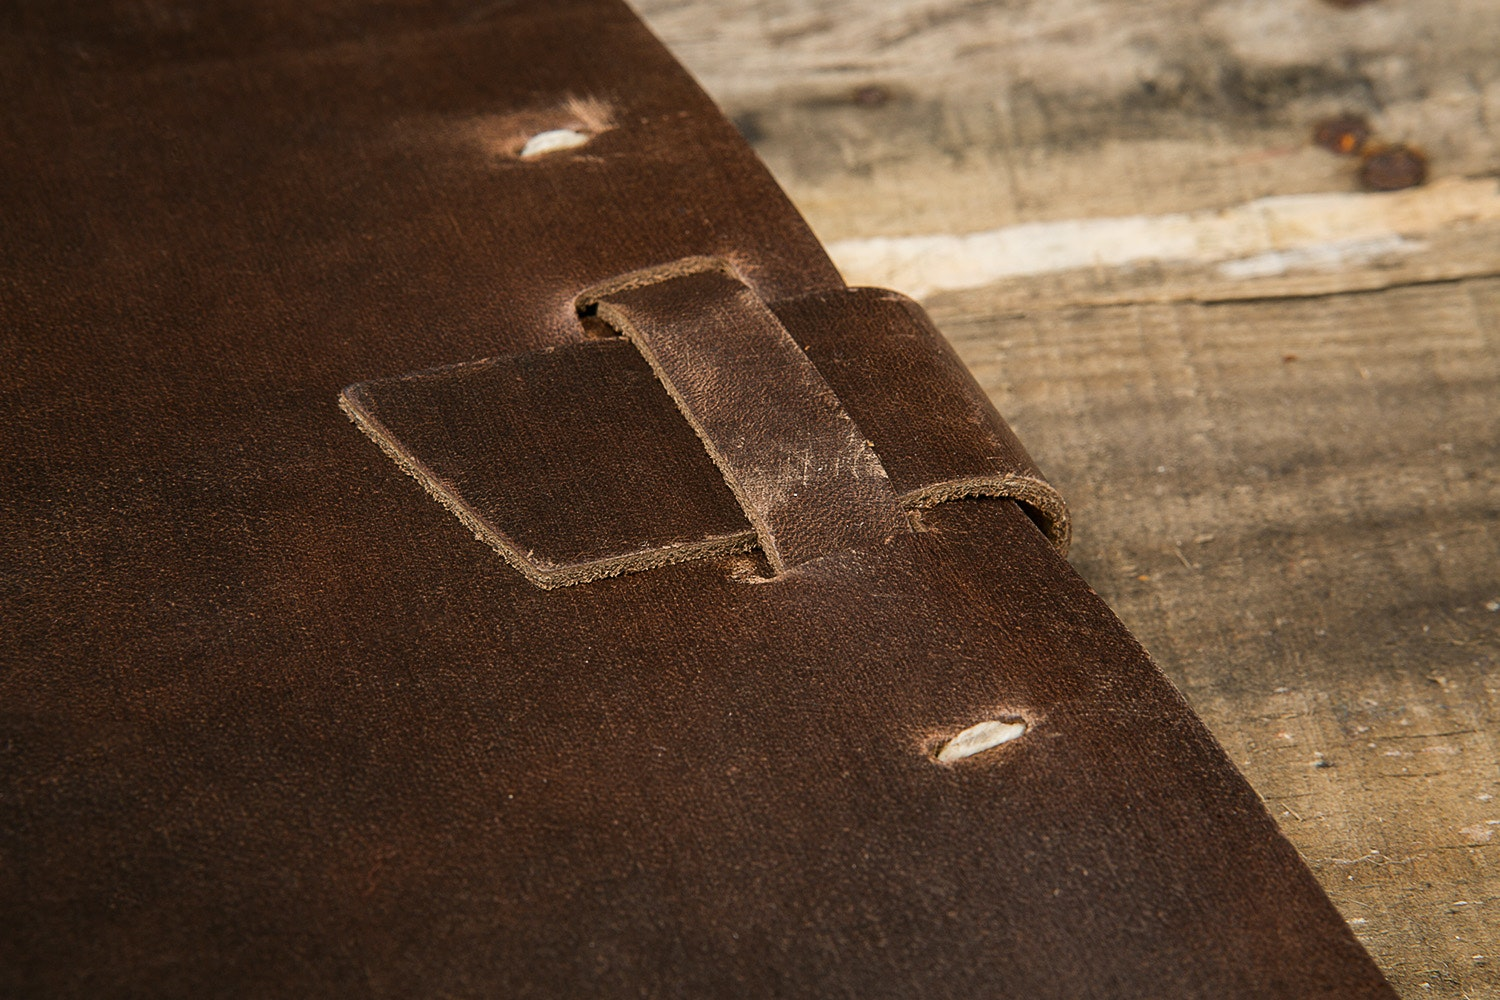 Rustico Hand-Sewn Leather Journals